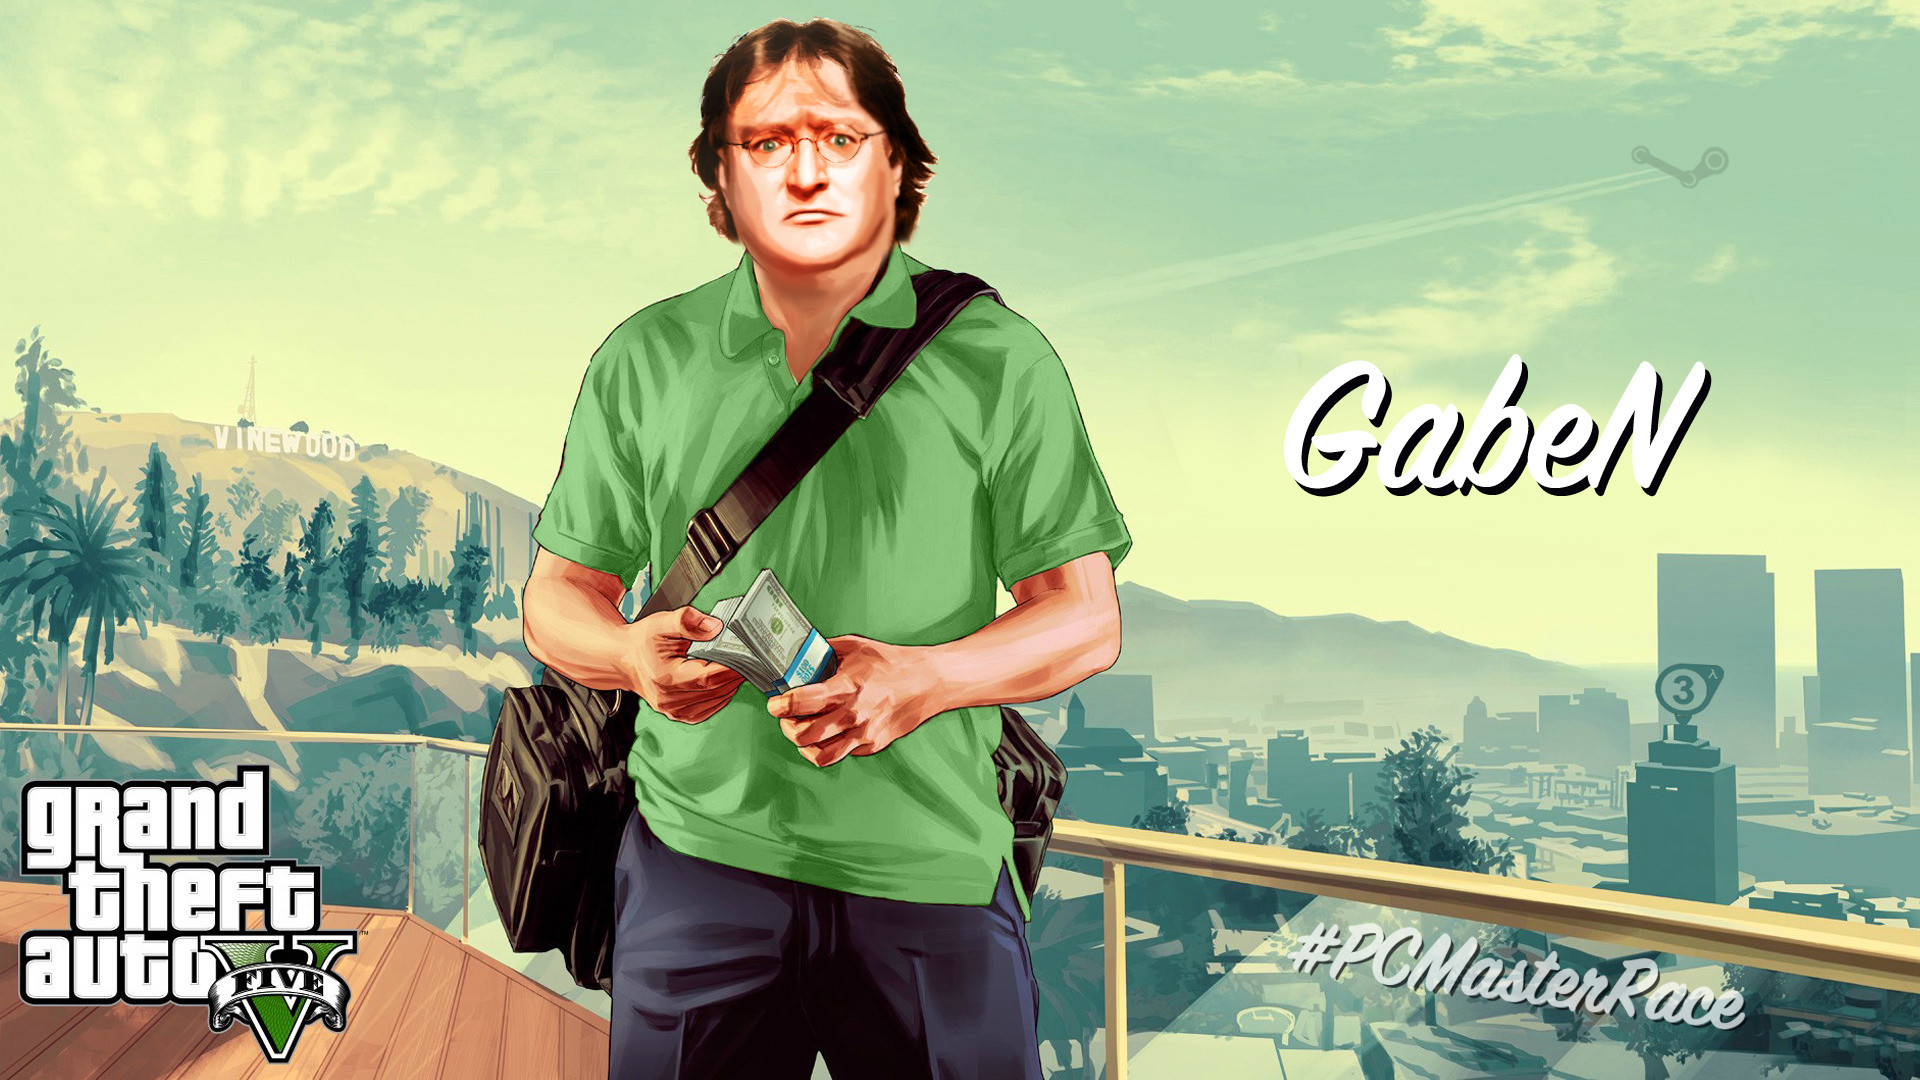 I Made a Glorious GabeN GTA 5 Wallpaper for All of You! (1920×1080)